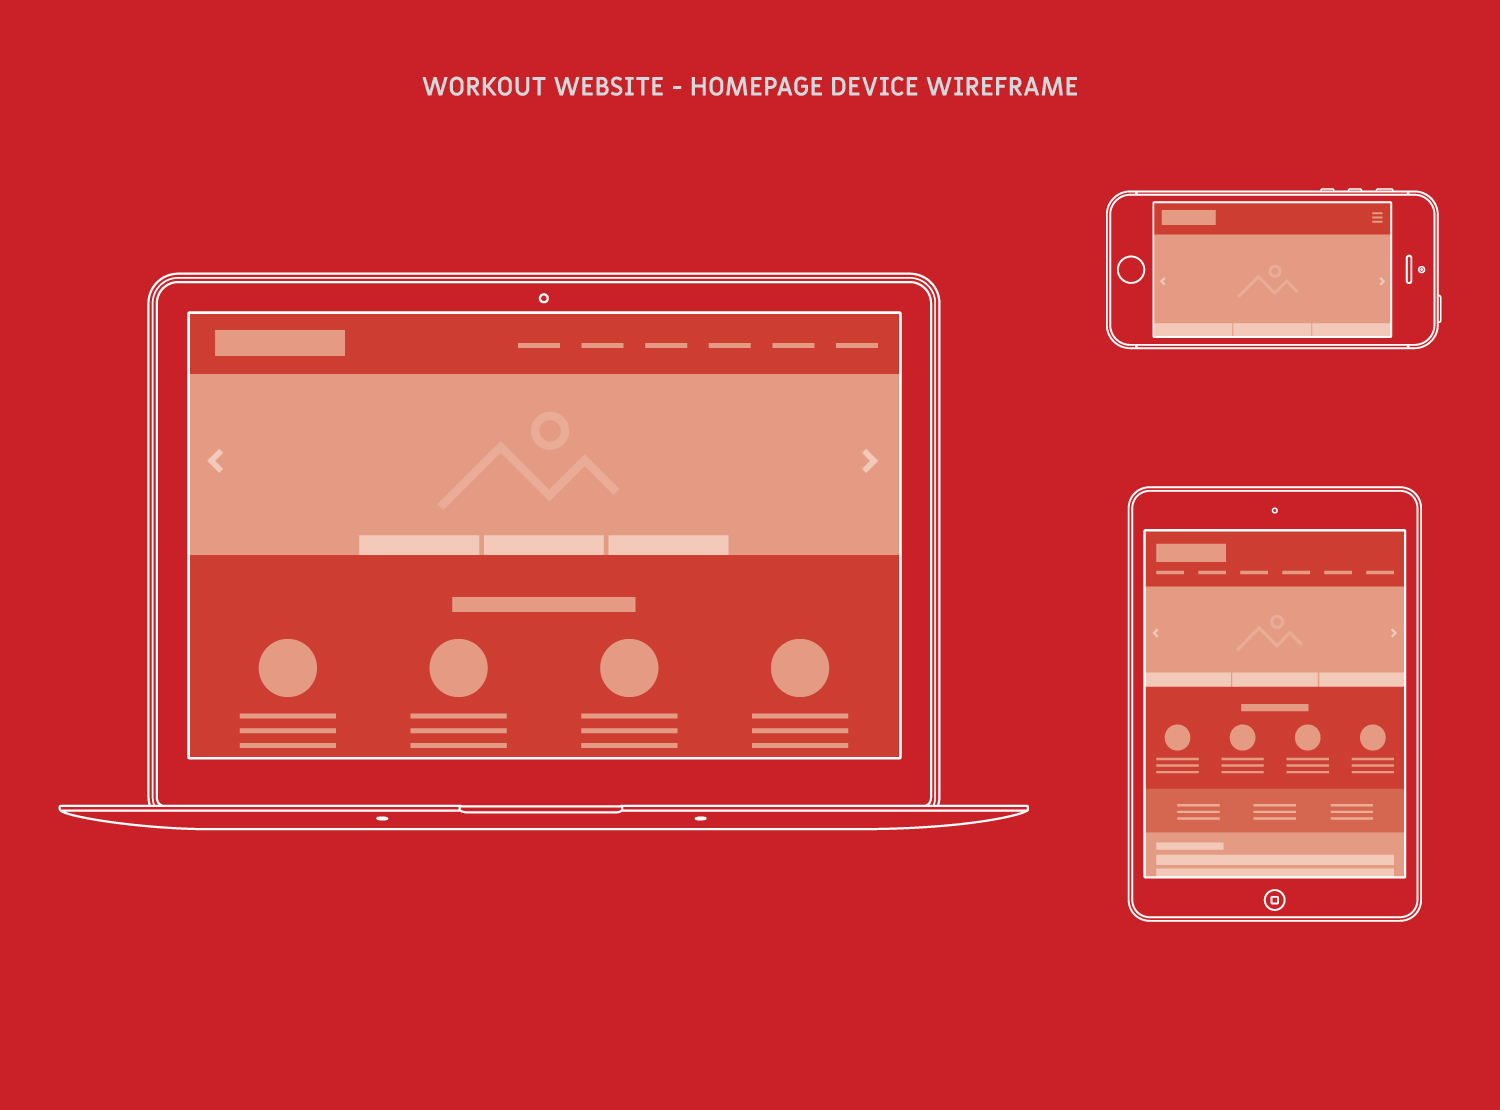 Workout Device Wireframe